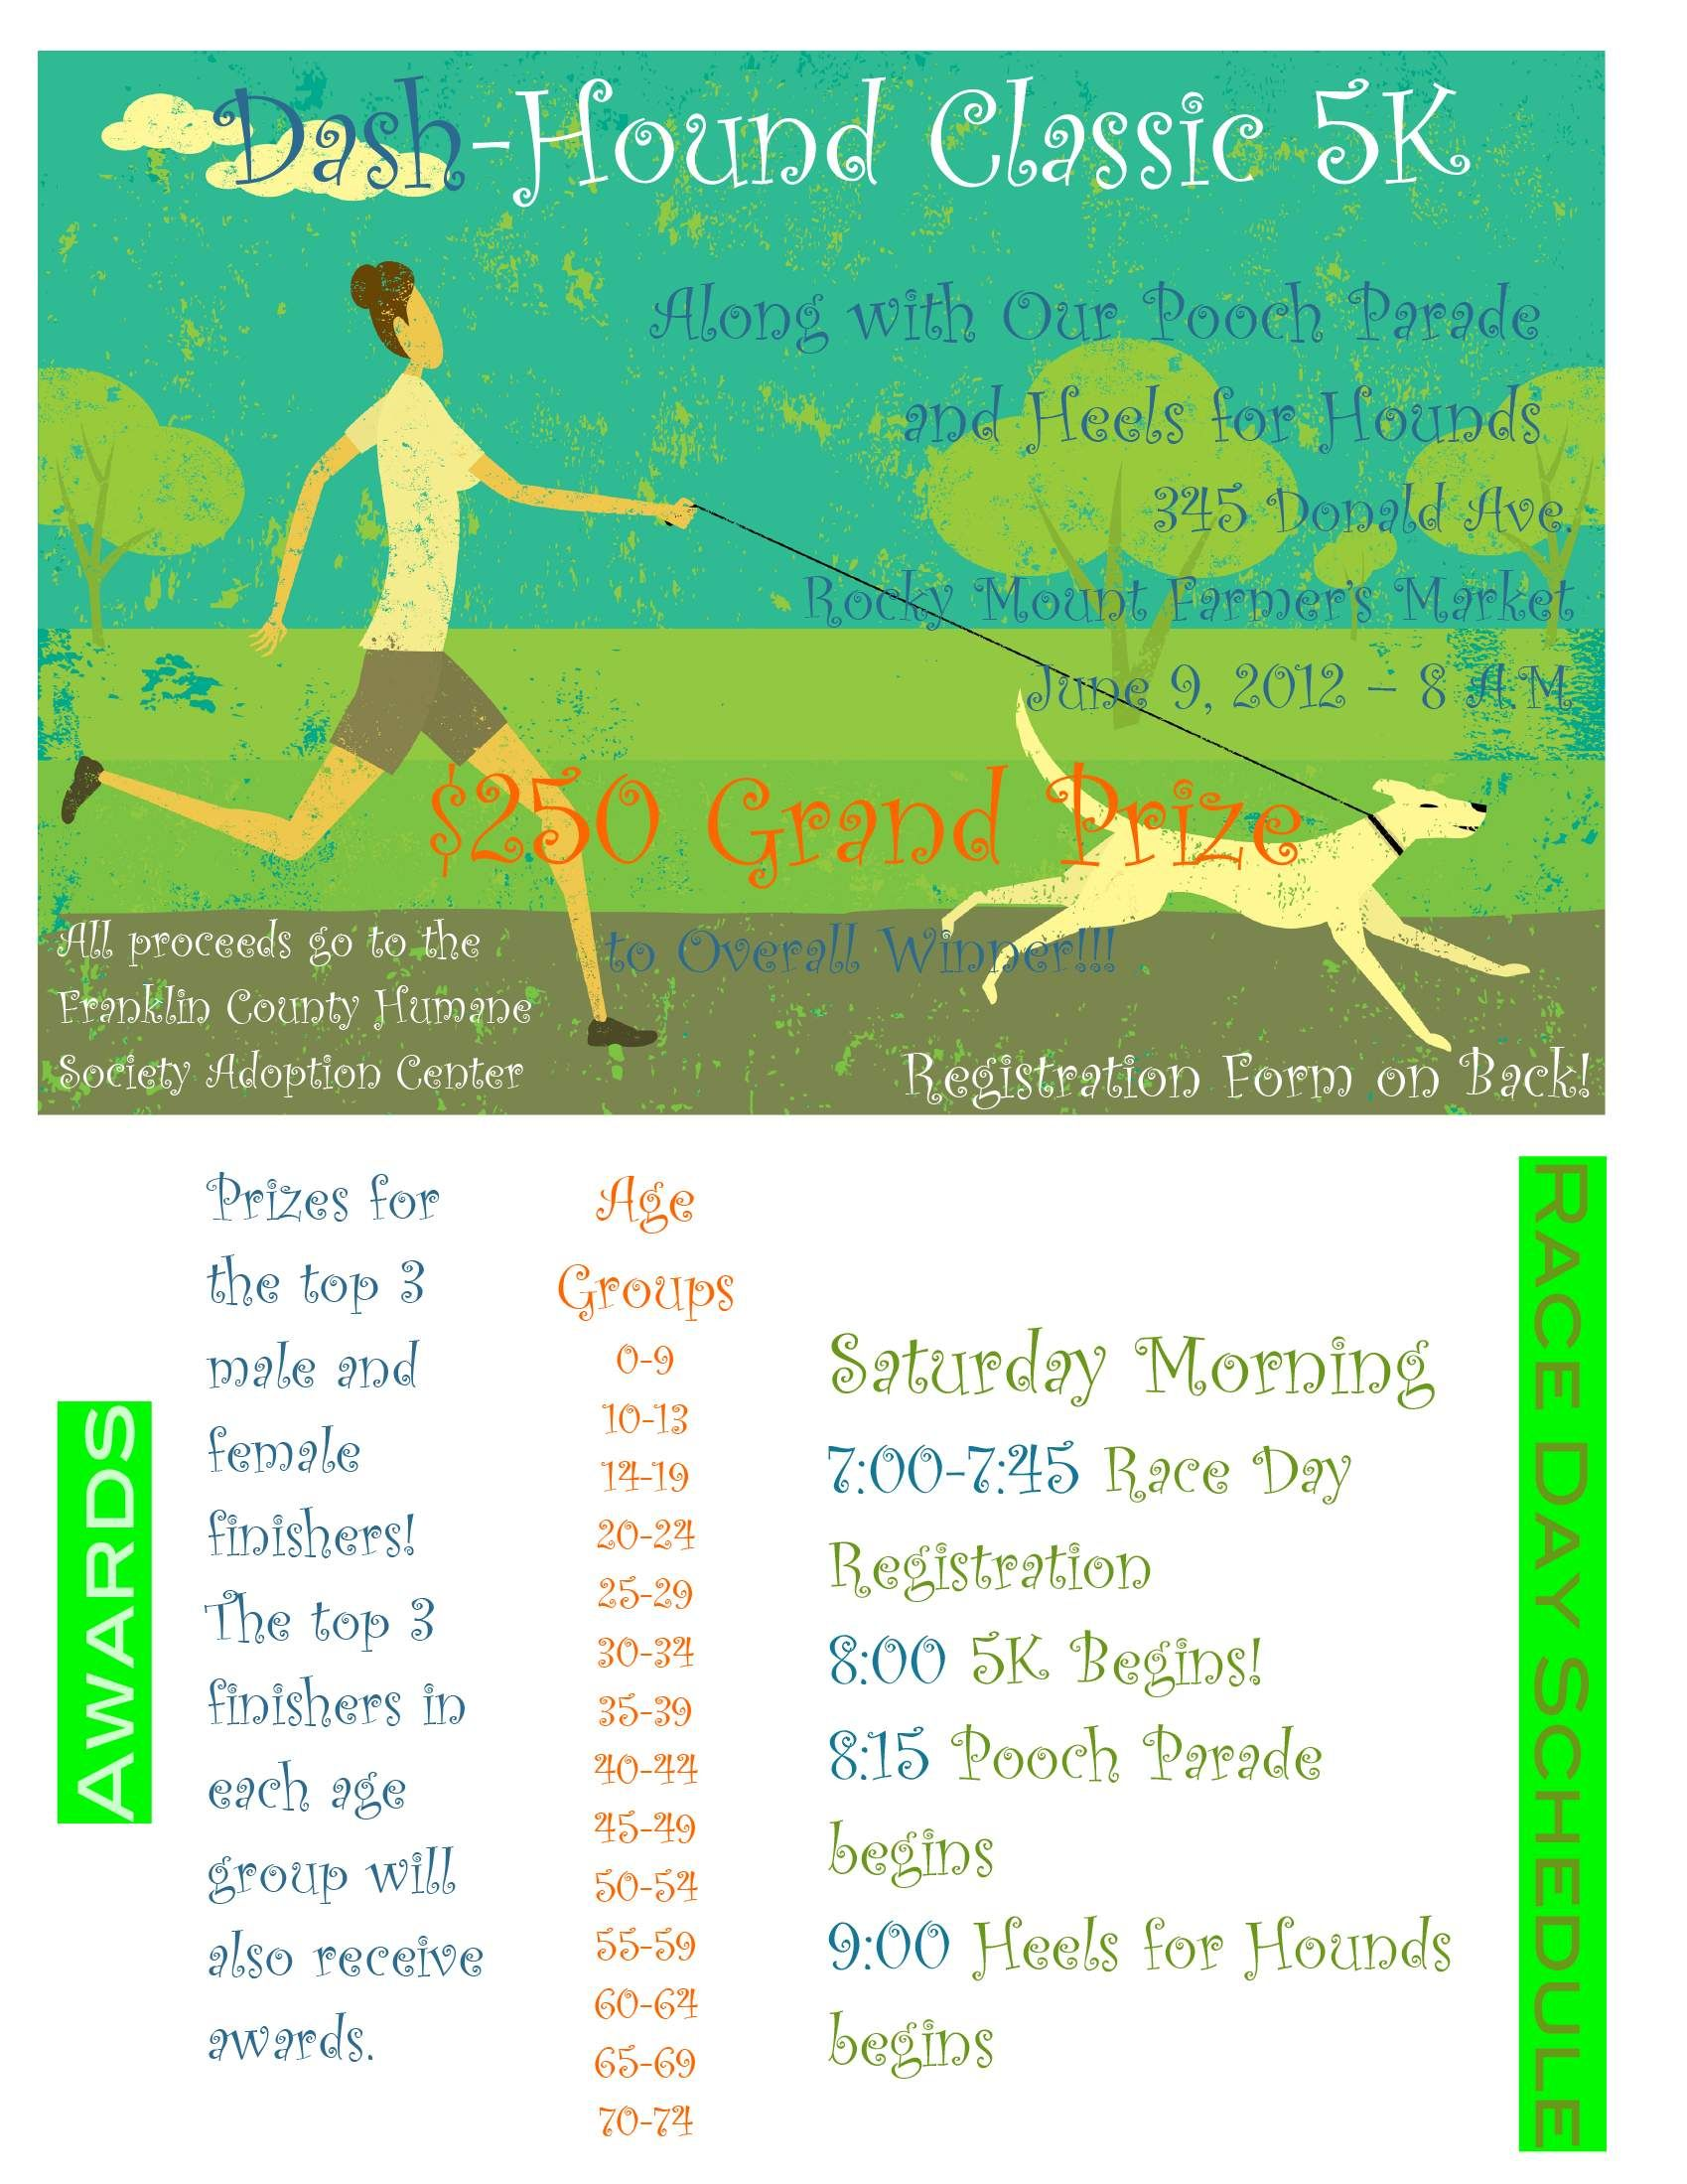 5K Fundraiser in Rocky Mount VA for the Franklin County Humane